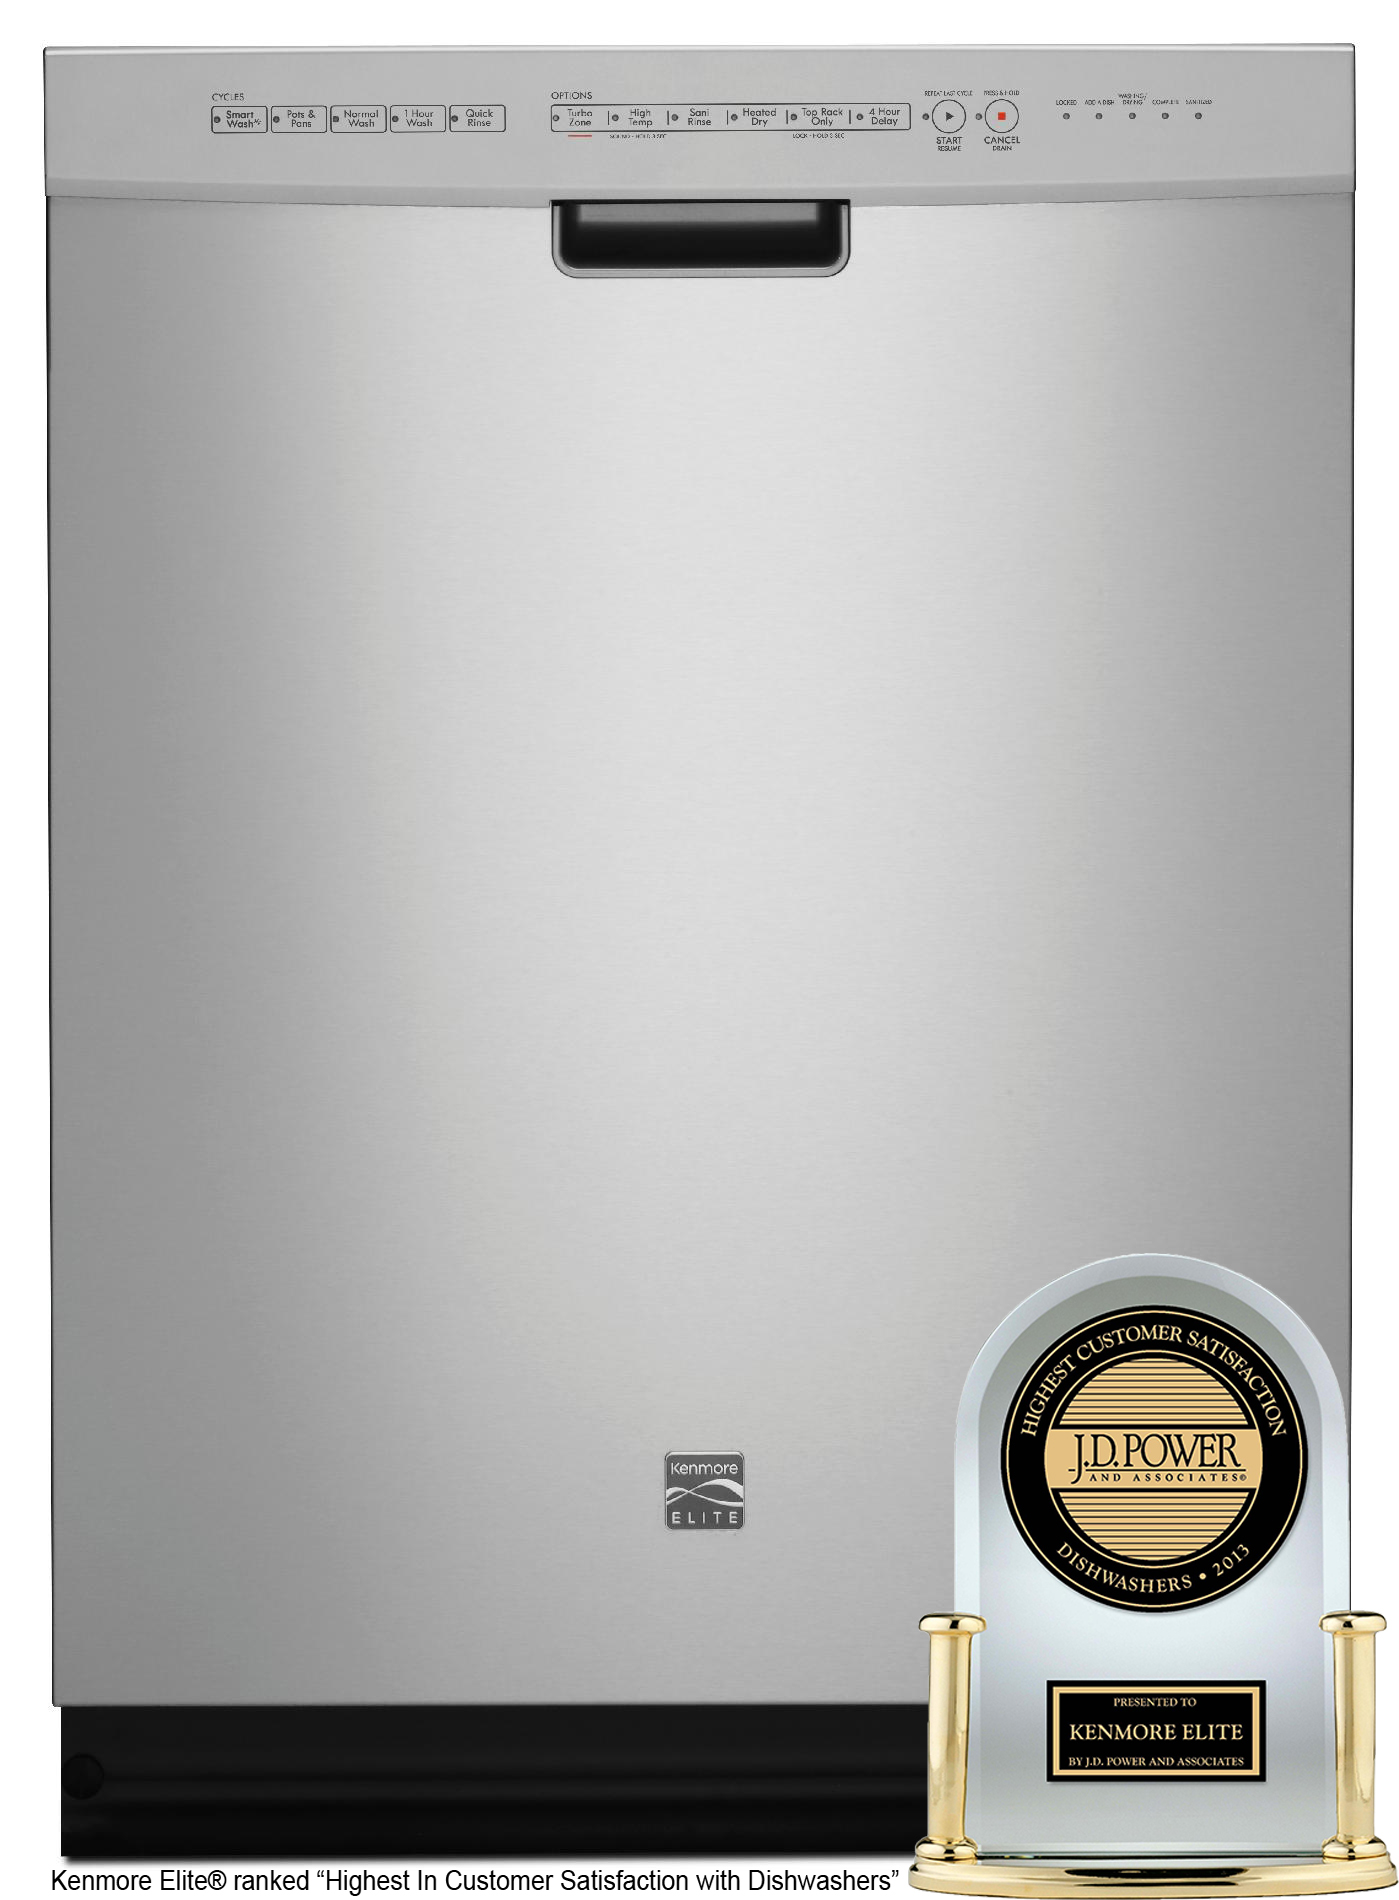 Kenmore Elite 24 BuiltIn Dishwasher Powerful and Quiet at Sears